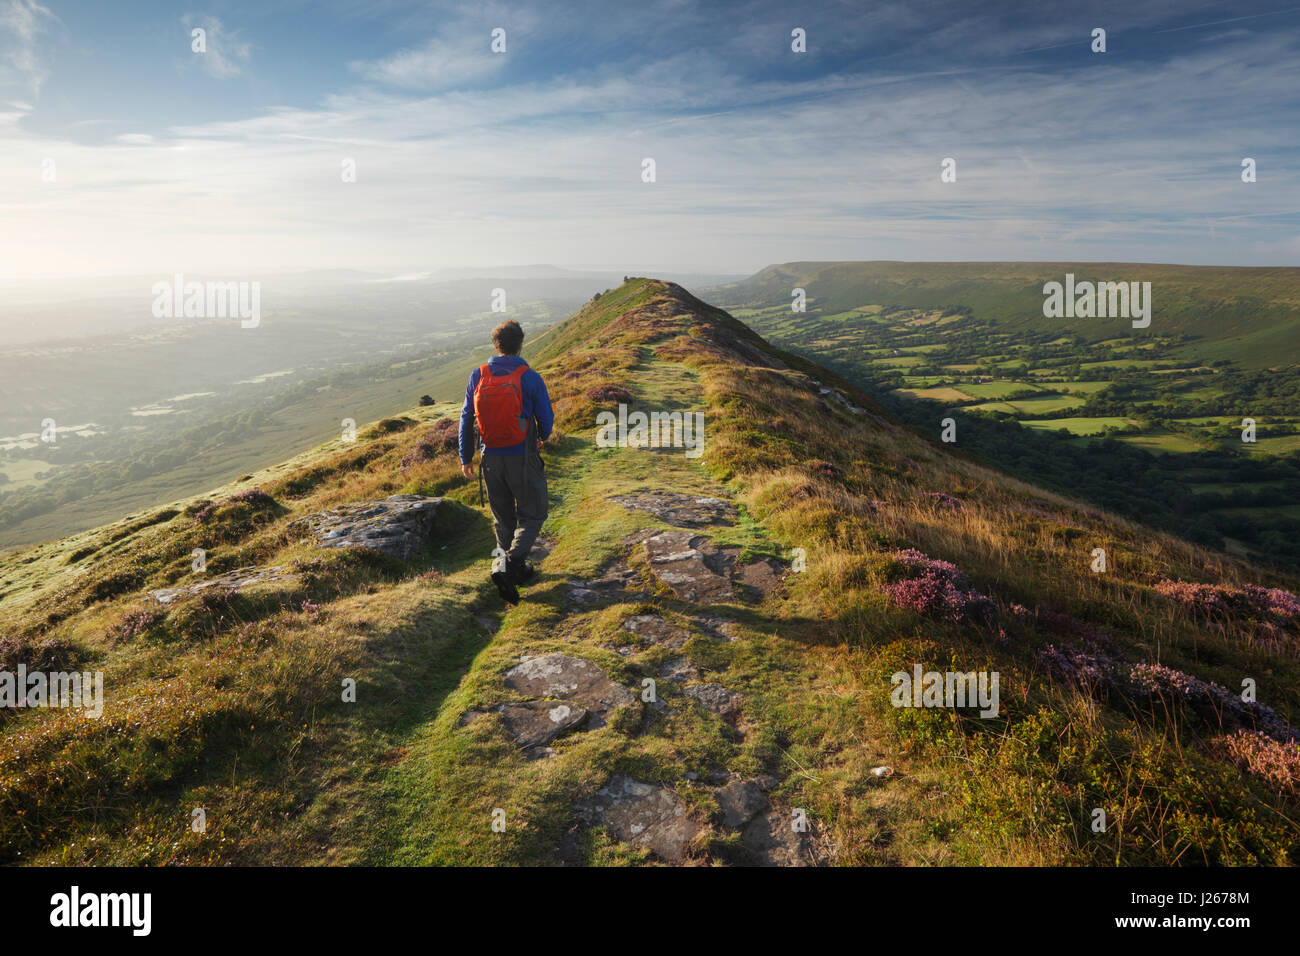 Hillwalker on Black Hill in the Black Mountains. Brecon Beacons National Park, Wales, UK. - Stock Image